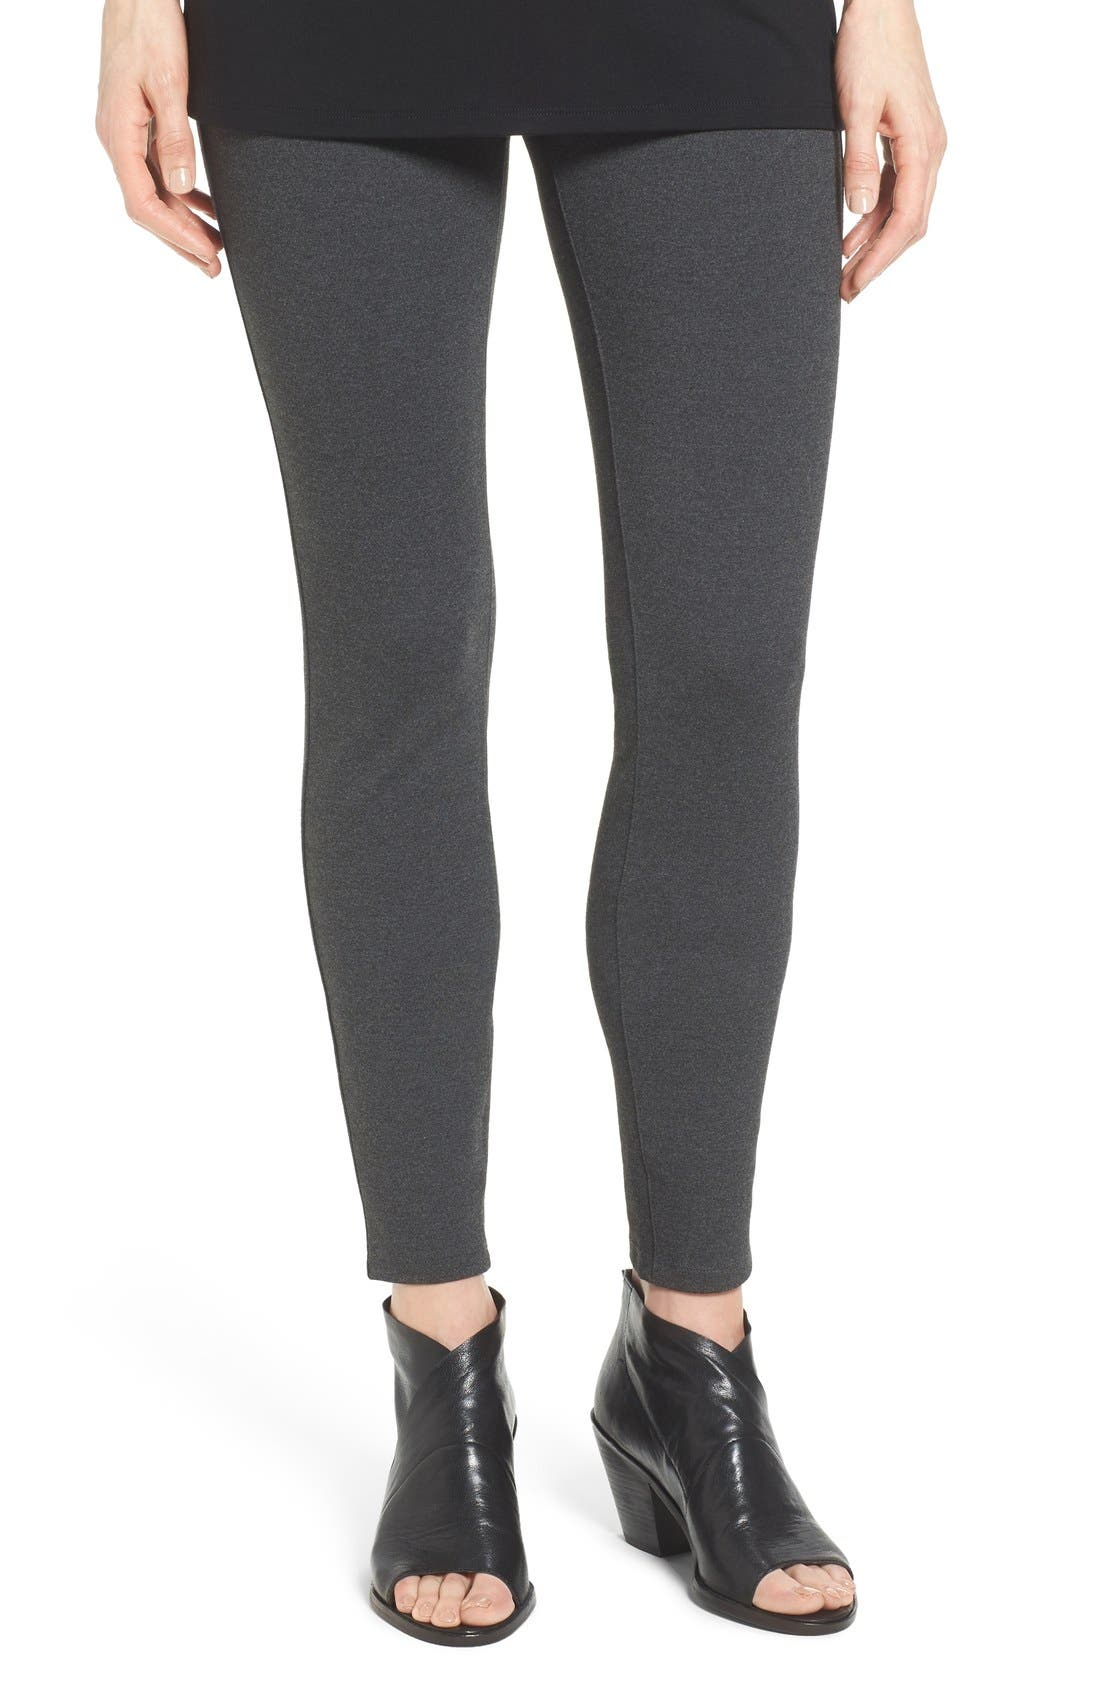 Alternate Image 1 Selected - Eileen Fisher Ponte Knit Leggings (Regular & Petite)